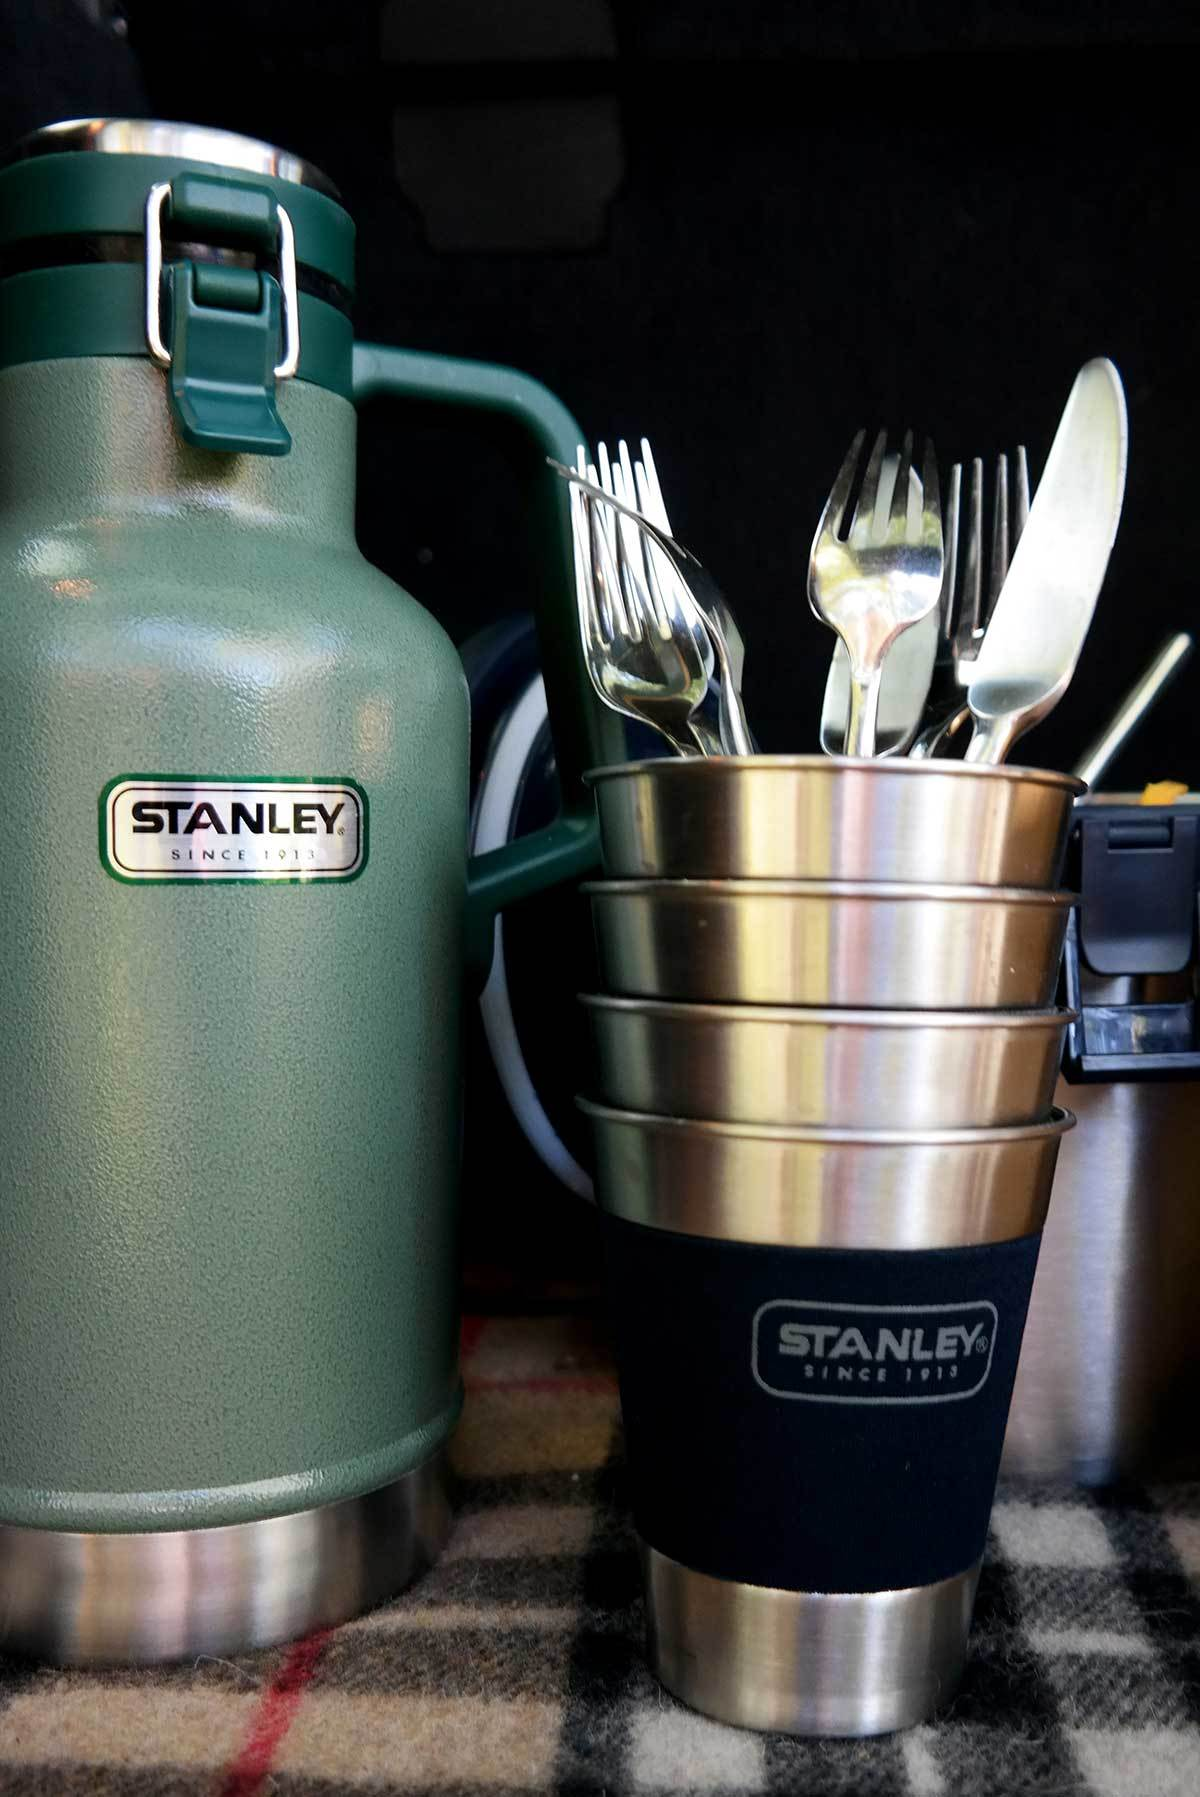 Stanley Brand thermos and tumblers https://ooh.li/a65e49e